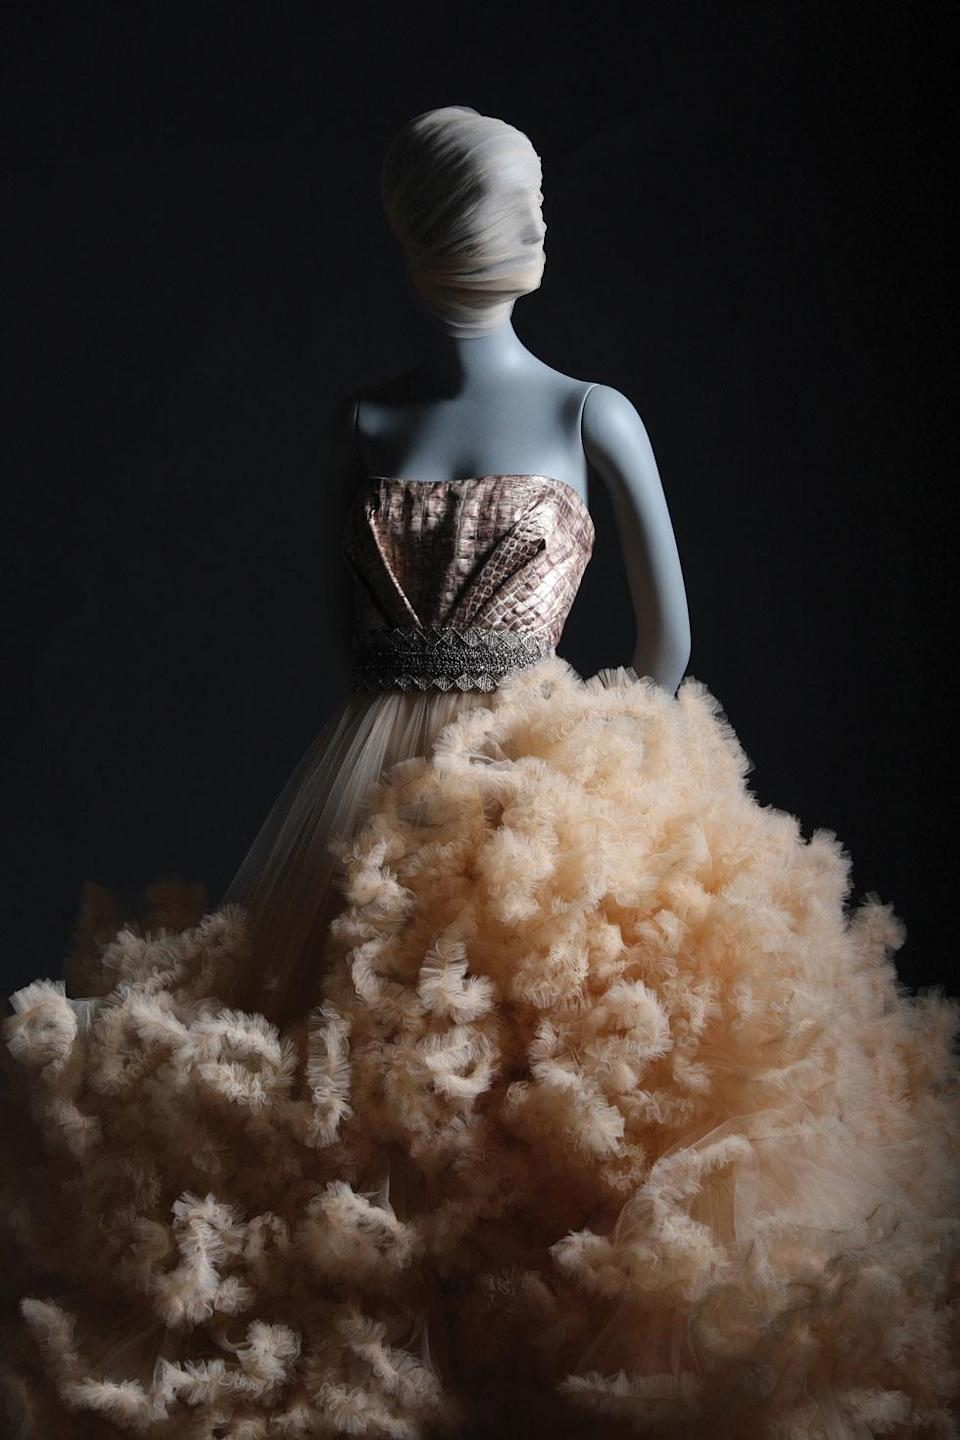 One of Christian Siriano's stunning gowns featured in his new book. (Photo: Brad Walsh, <em>Dresses to Dream About</em>, by Christian Siriano, Rizzoli New York)